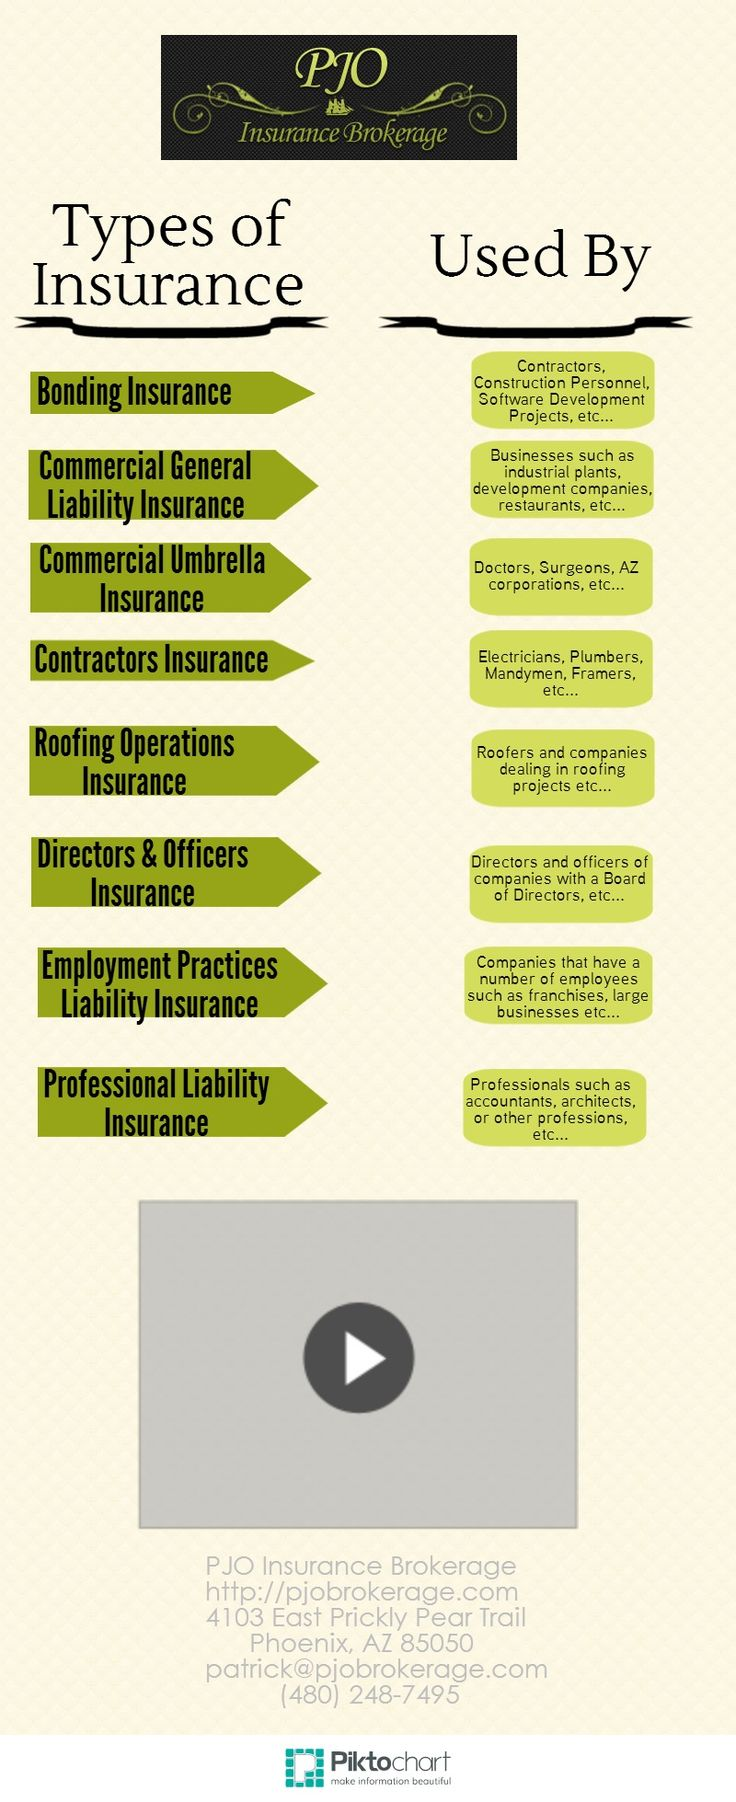 Types of Commercial Insurance and Who May Use Them